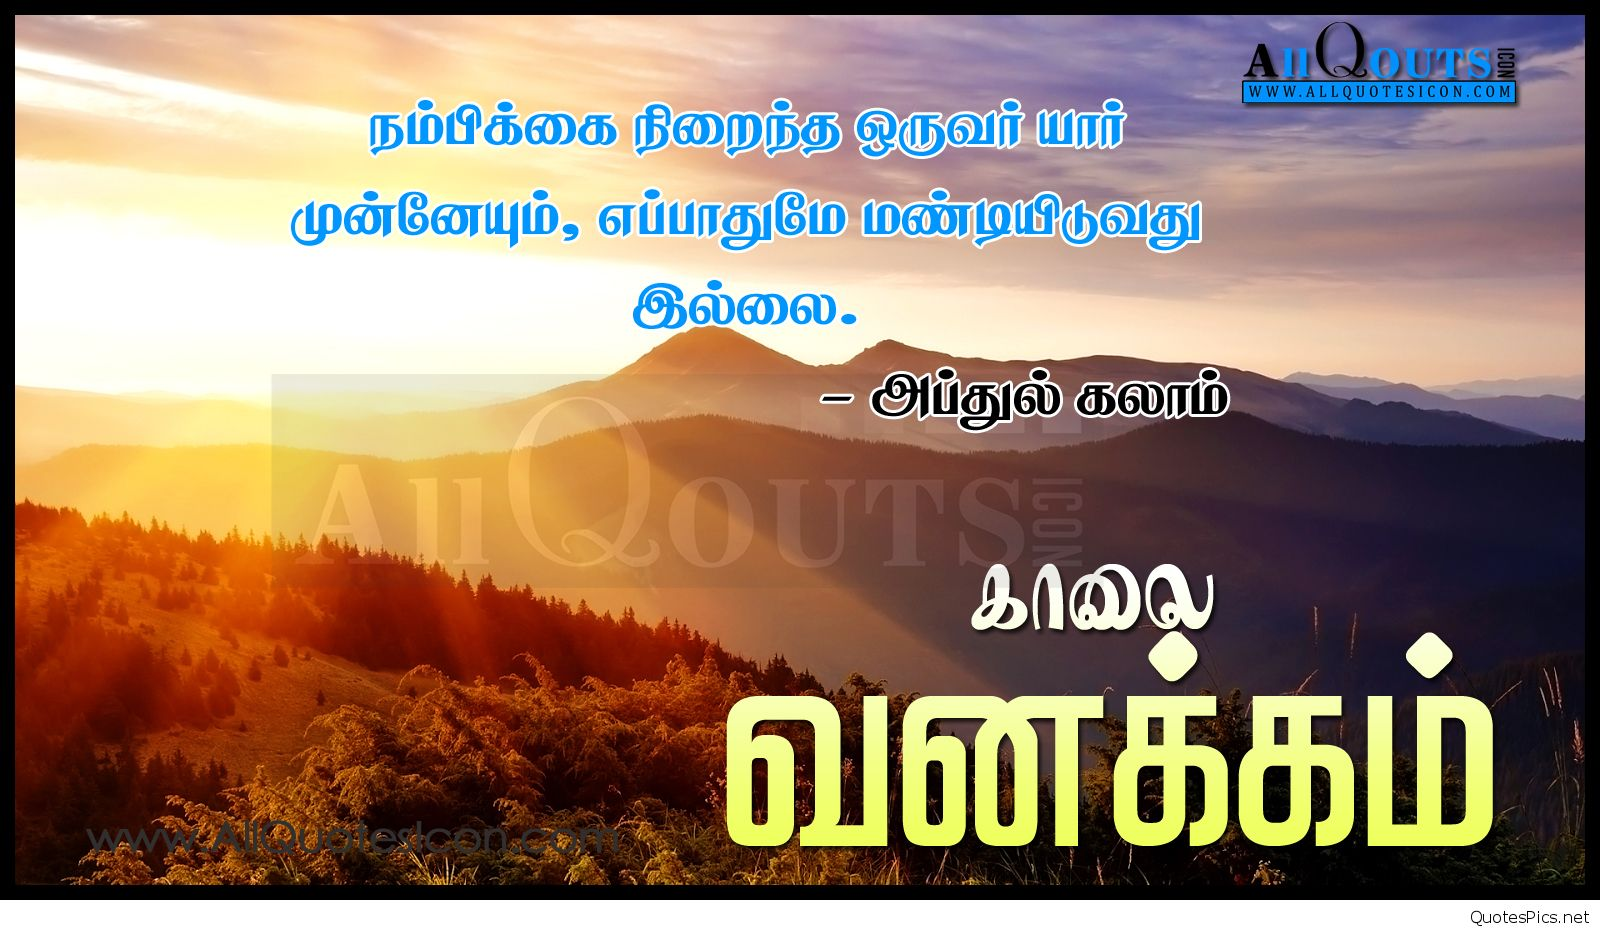 Tamil Thathuvam Wallpaper - Inspirational Good Morning Quotes In Tamil , HD Wallpaper & Backgrounds